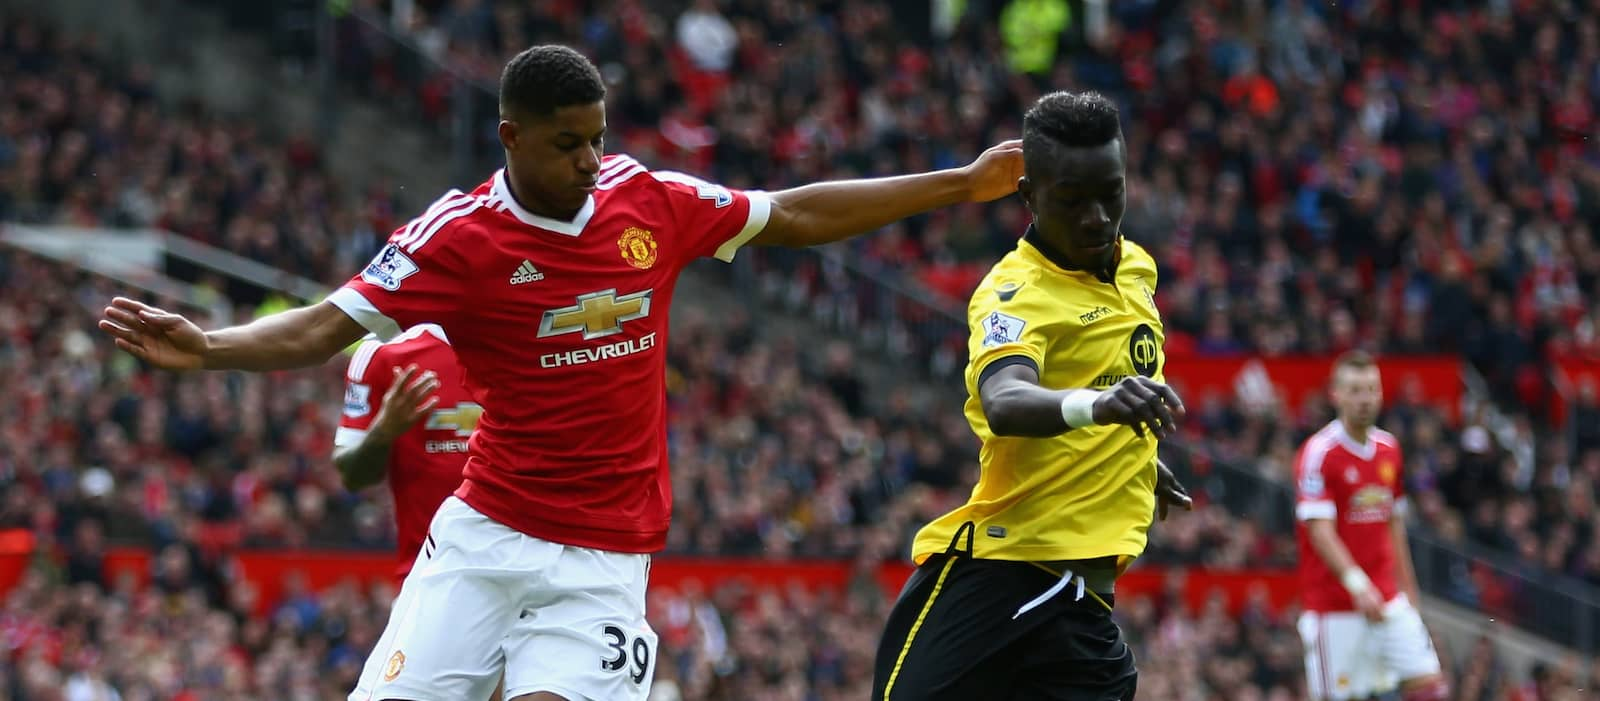 David de Gea: Marcus Rashford can make Manchester United history